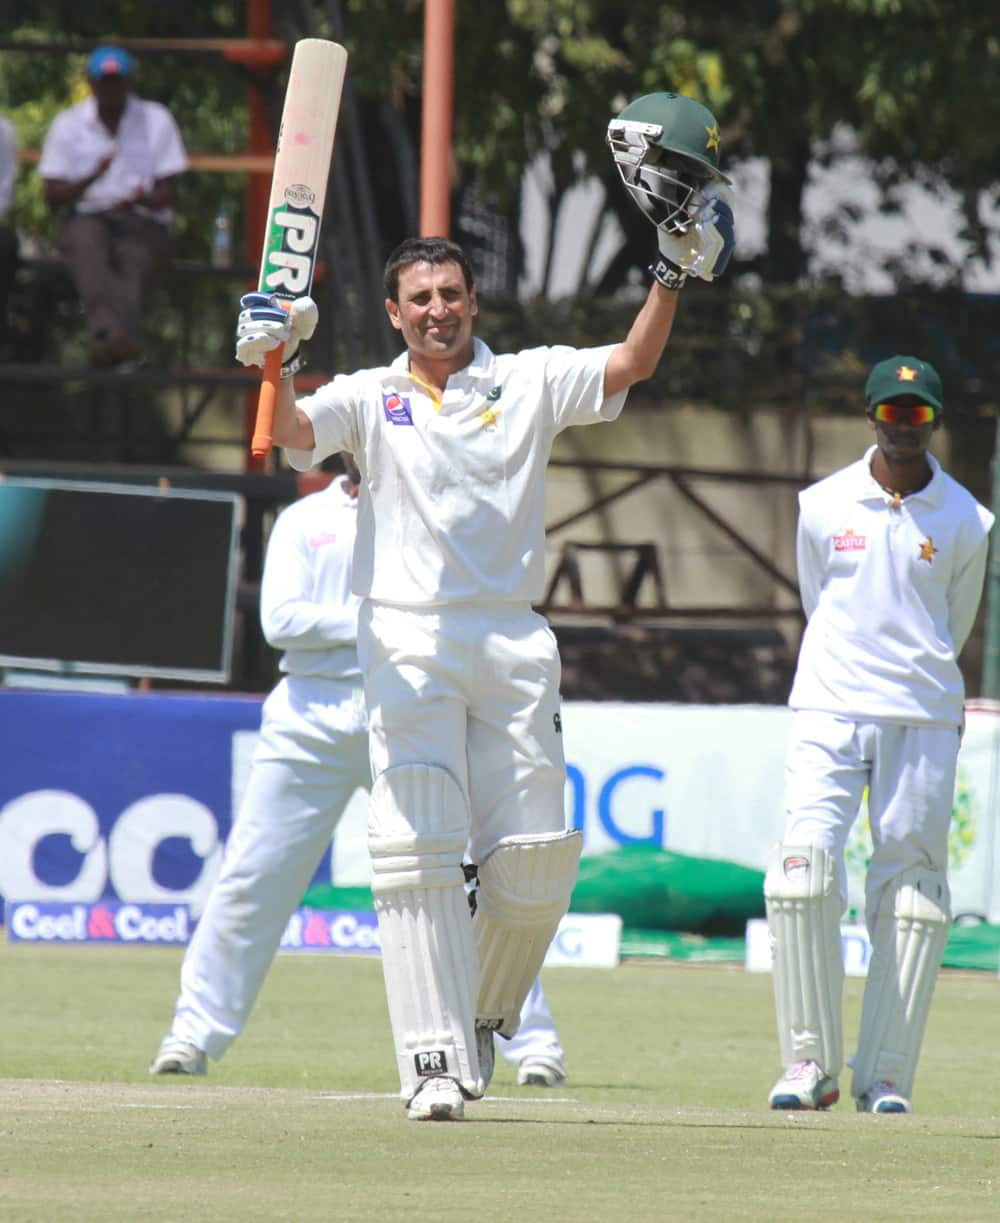 Pakistan batsman Younis Khan celebrates after scoring 100 runs on the fourth day of the first test match against Zimbabwe at Harare Sports Club in Harare.